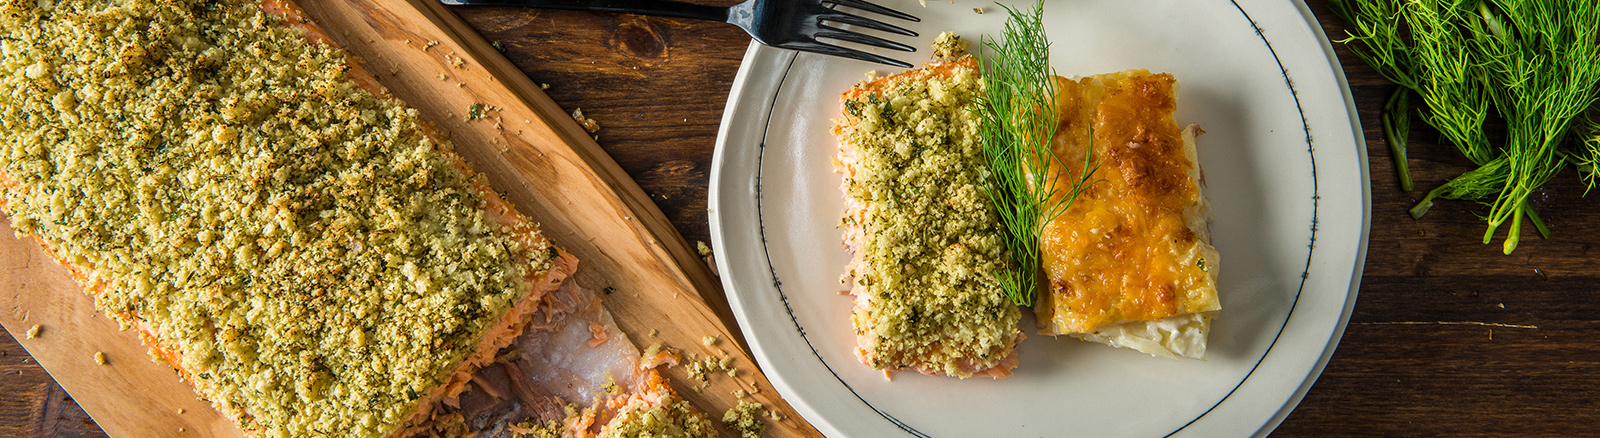 Traeger Recipe Slow Roasted Wild Salmon With Cheesy Scalloped